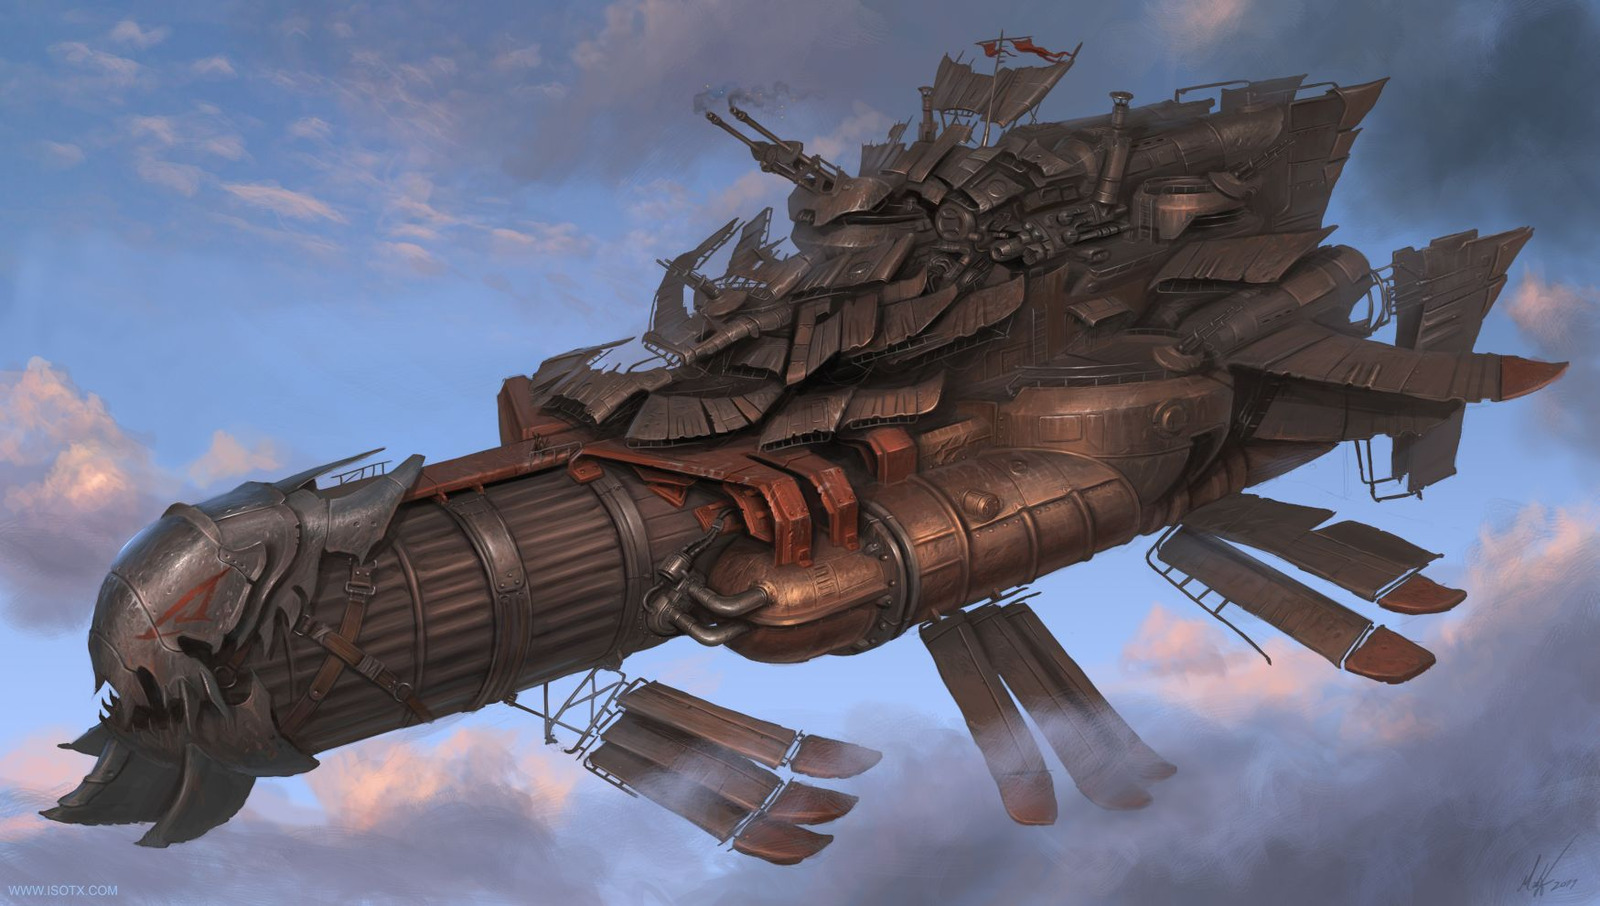 Steampunk Airships Battle Steampunk Airship Picture